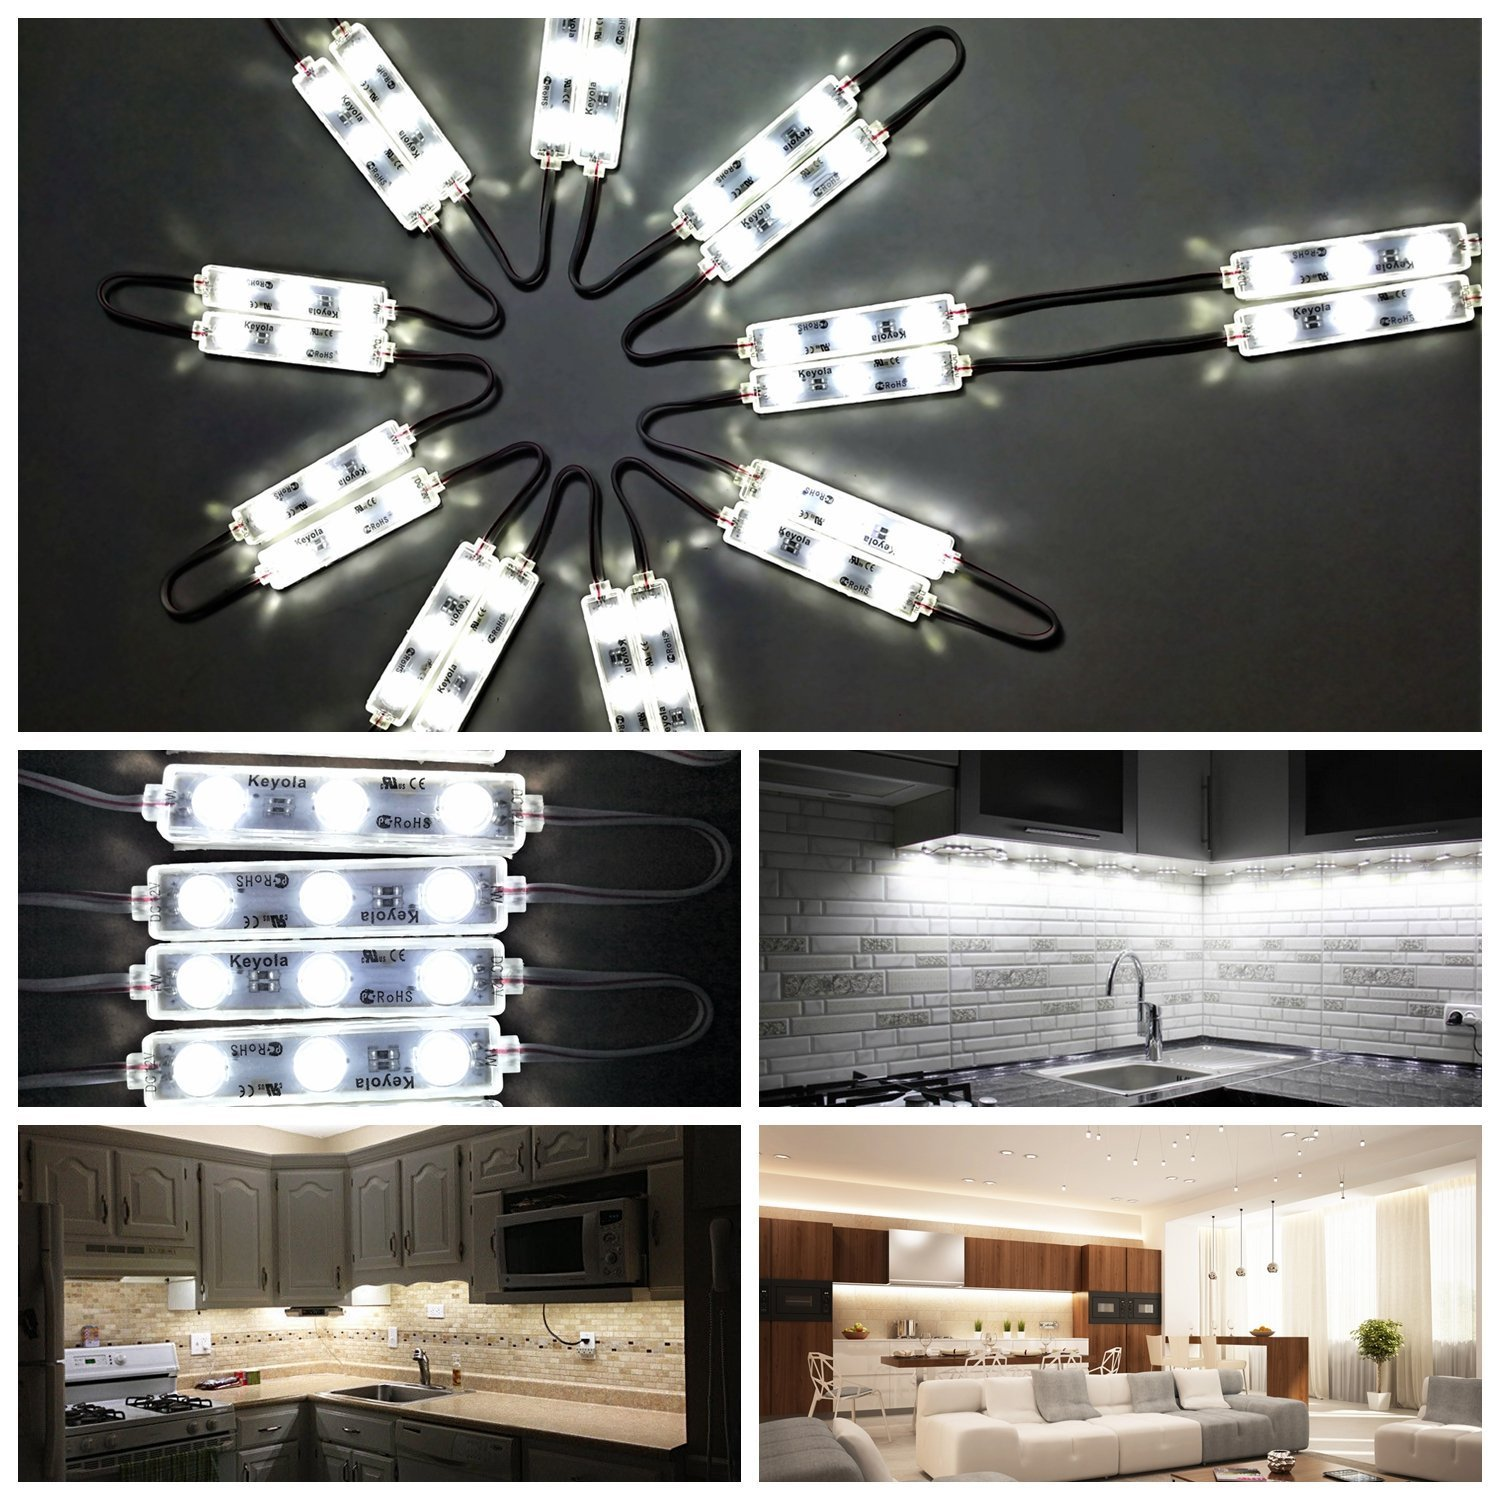 Dimmable LED Under Cabinet Lighting Kit,20W 2400LM-60leds White 10ft Under Counter Lights under Closet kitchen lights kit,with dimmer and power